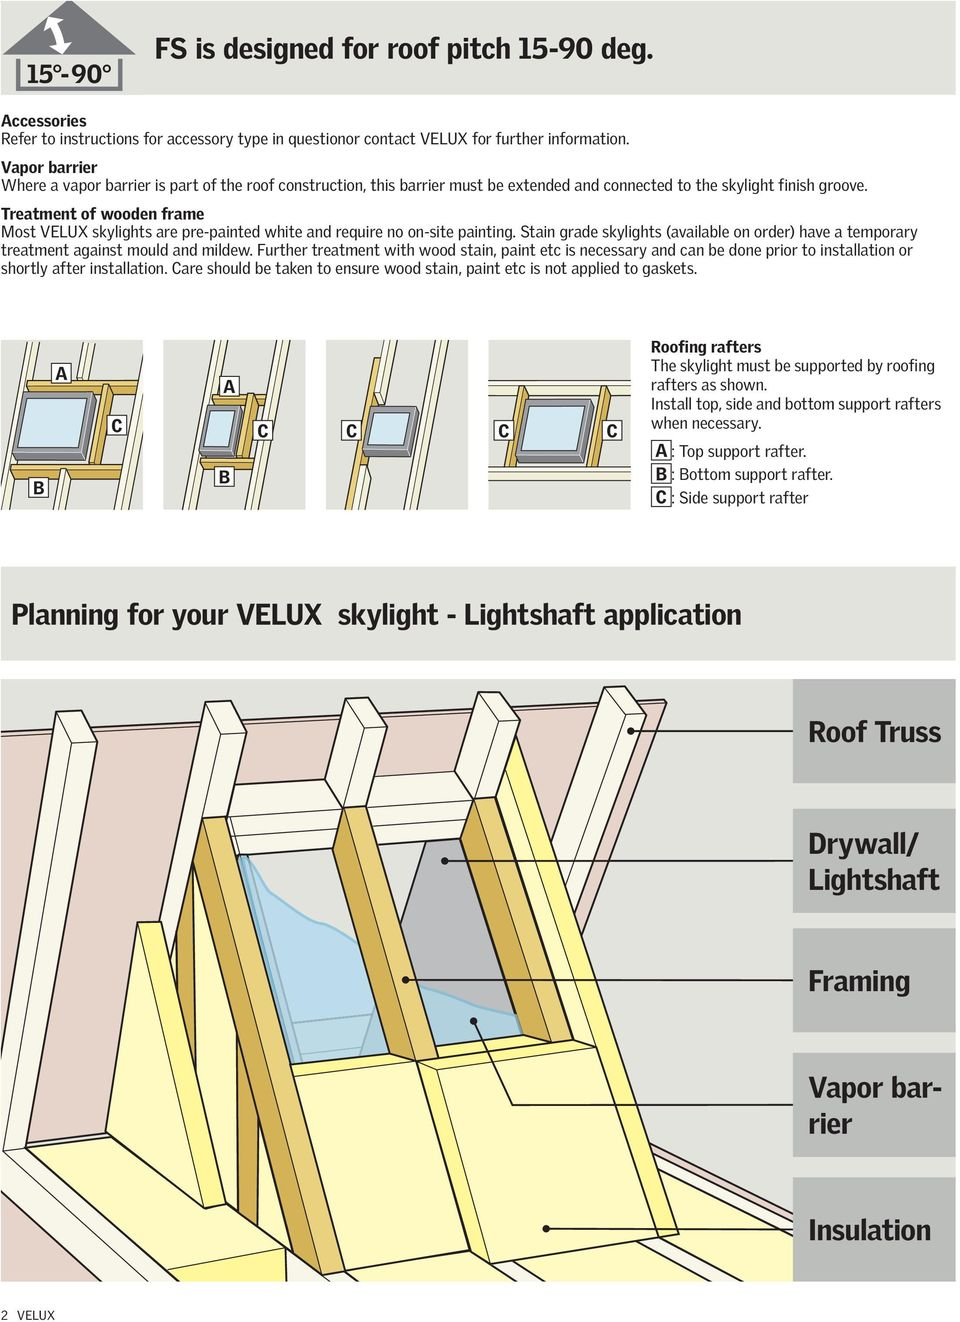 Fs Deck Mounted Skylight Installation Instructions Pdf Velux Wiring Diagram Treatment Of Wooden Frame Most Skylights Are Pre Painted White And Require No On